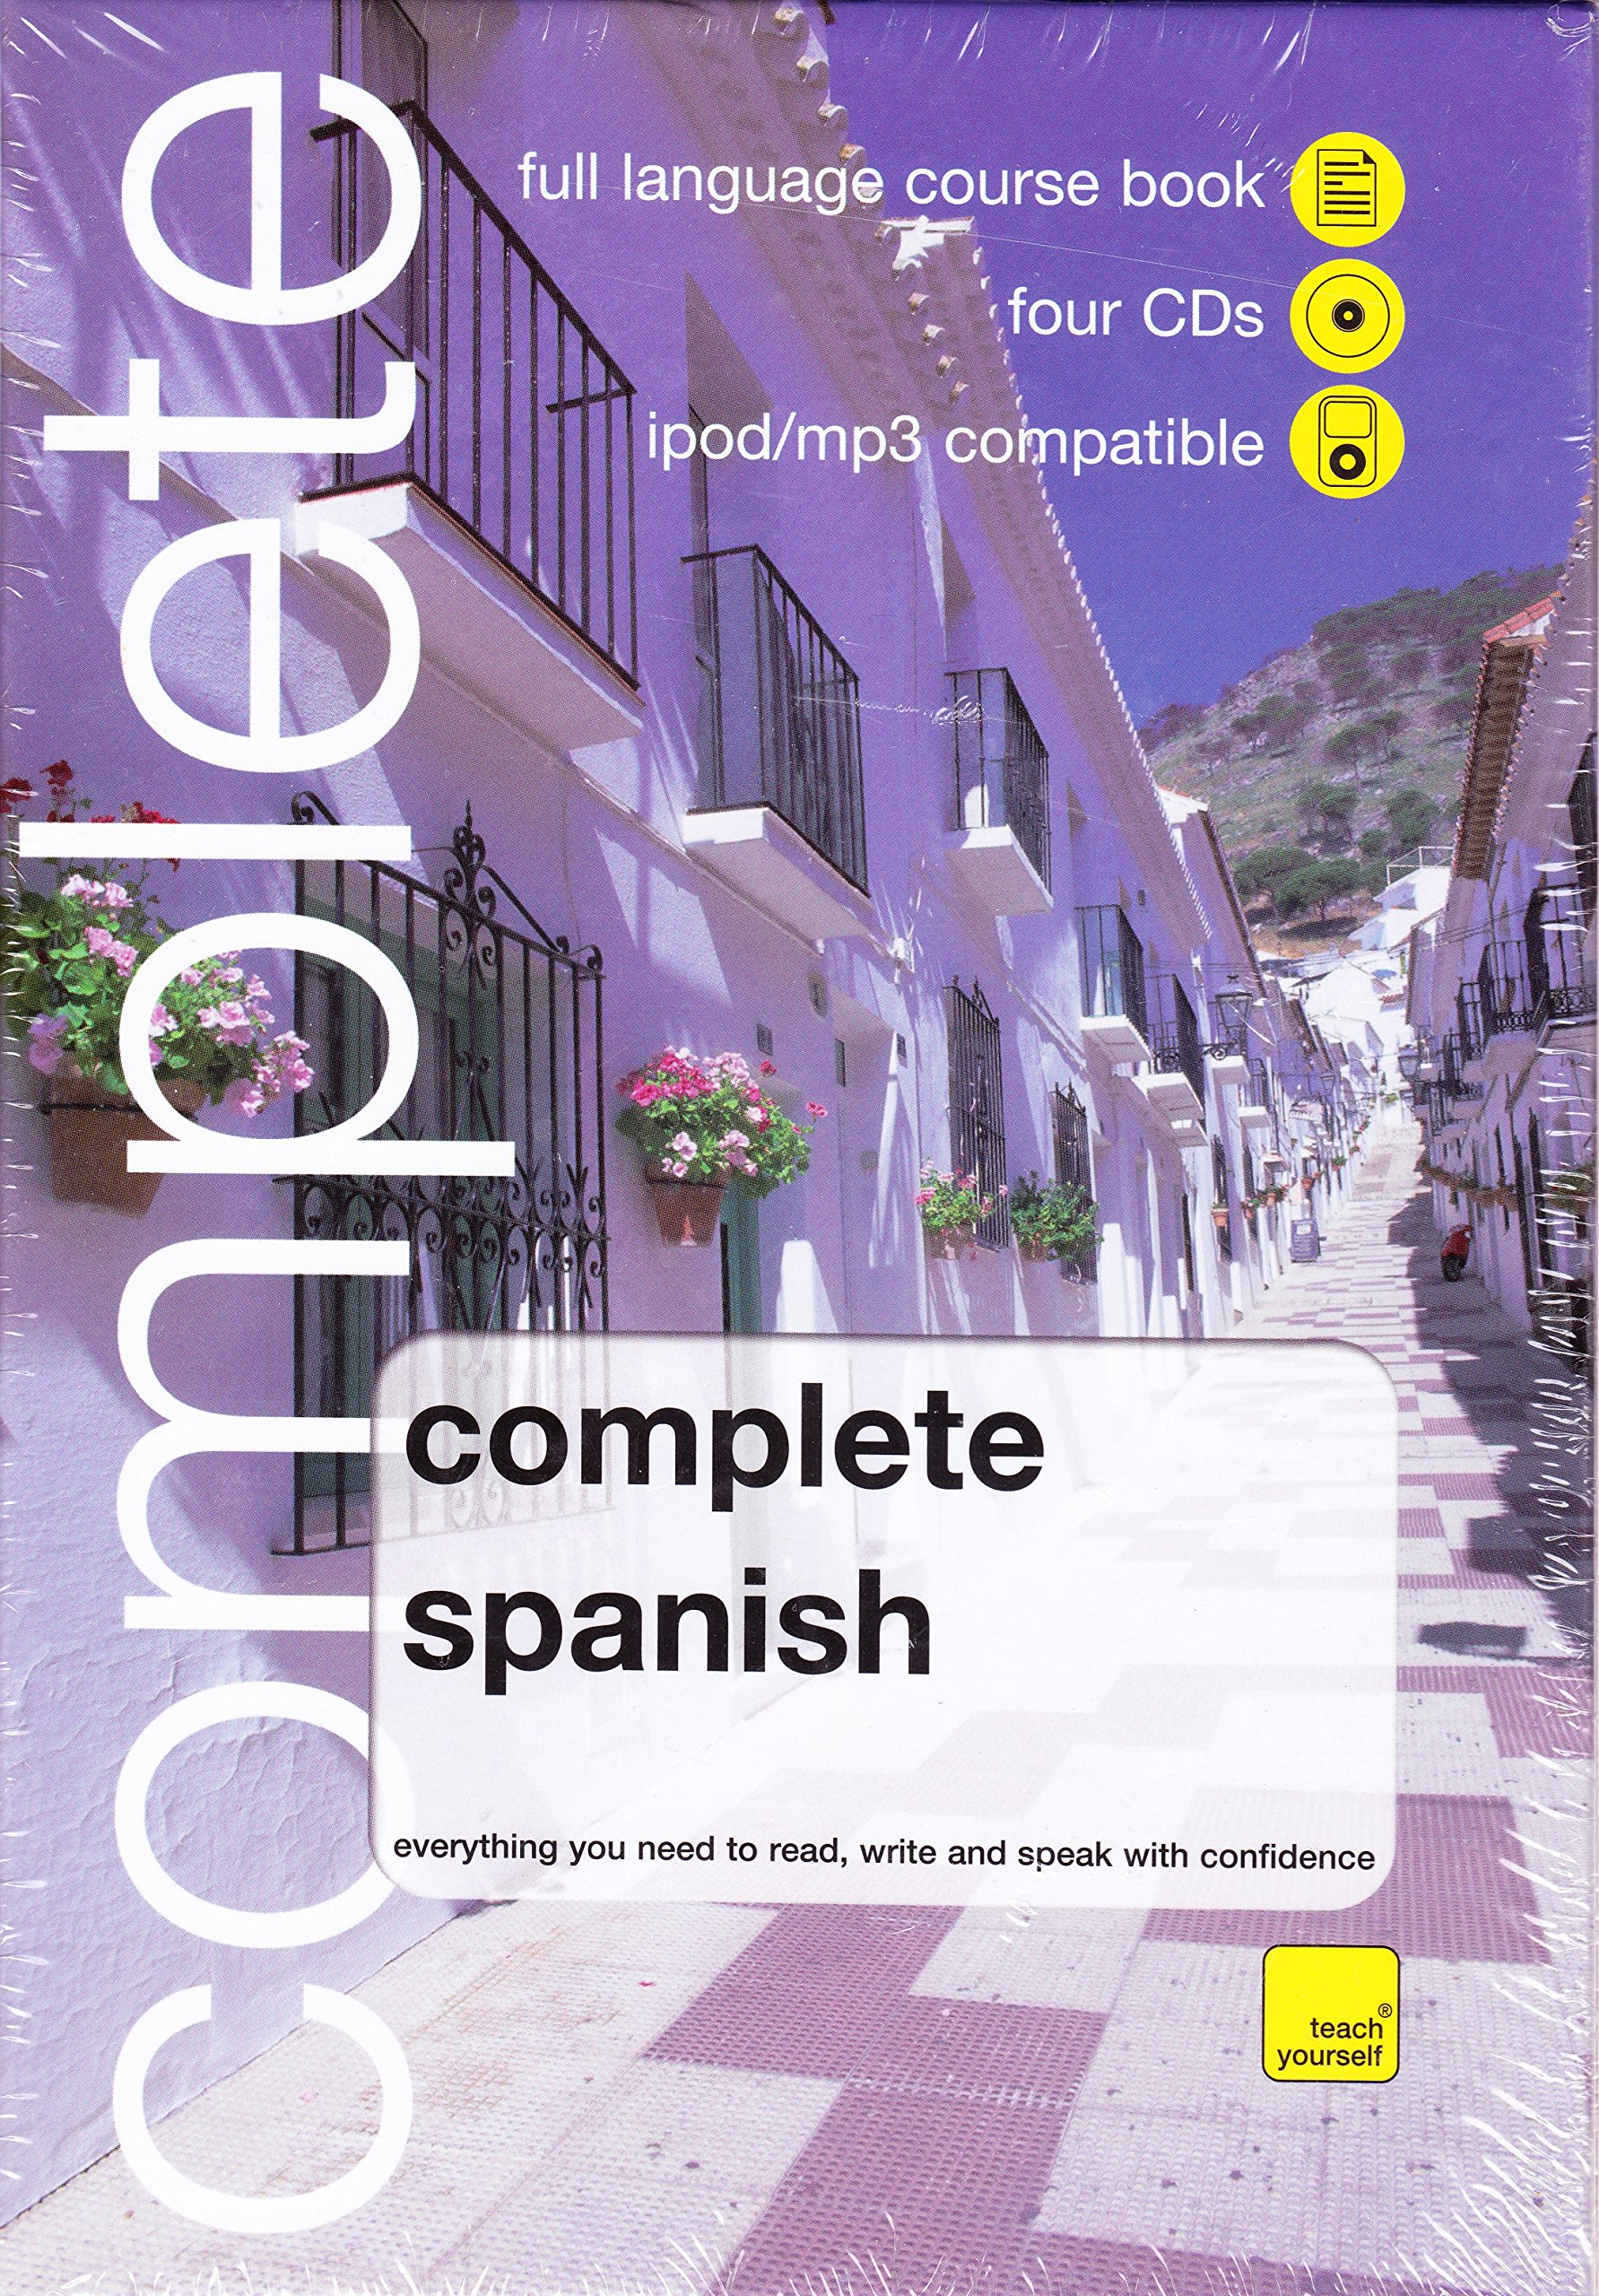 Whsmith teach yourself complete spanish book4 cd pack amazon whsmith teach yourself complete spanish book4 cd pack amazon juan kattan ibarra 9780340990629 books solutioingenieria Choice Image